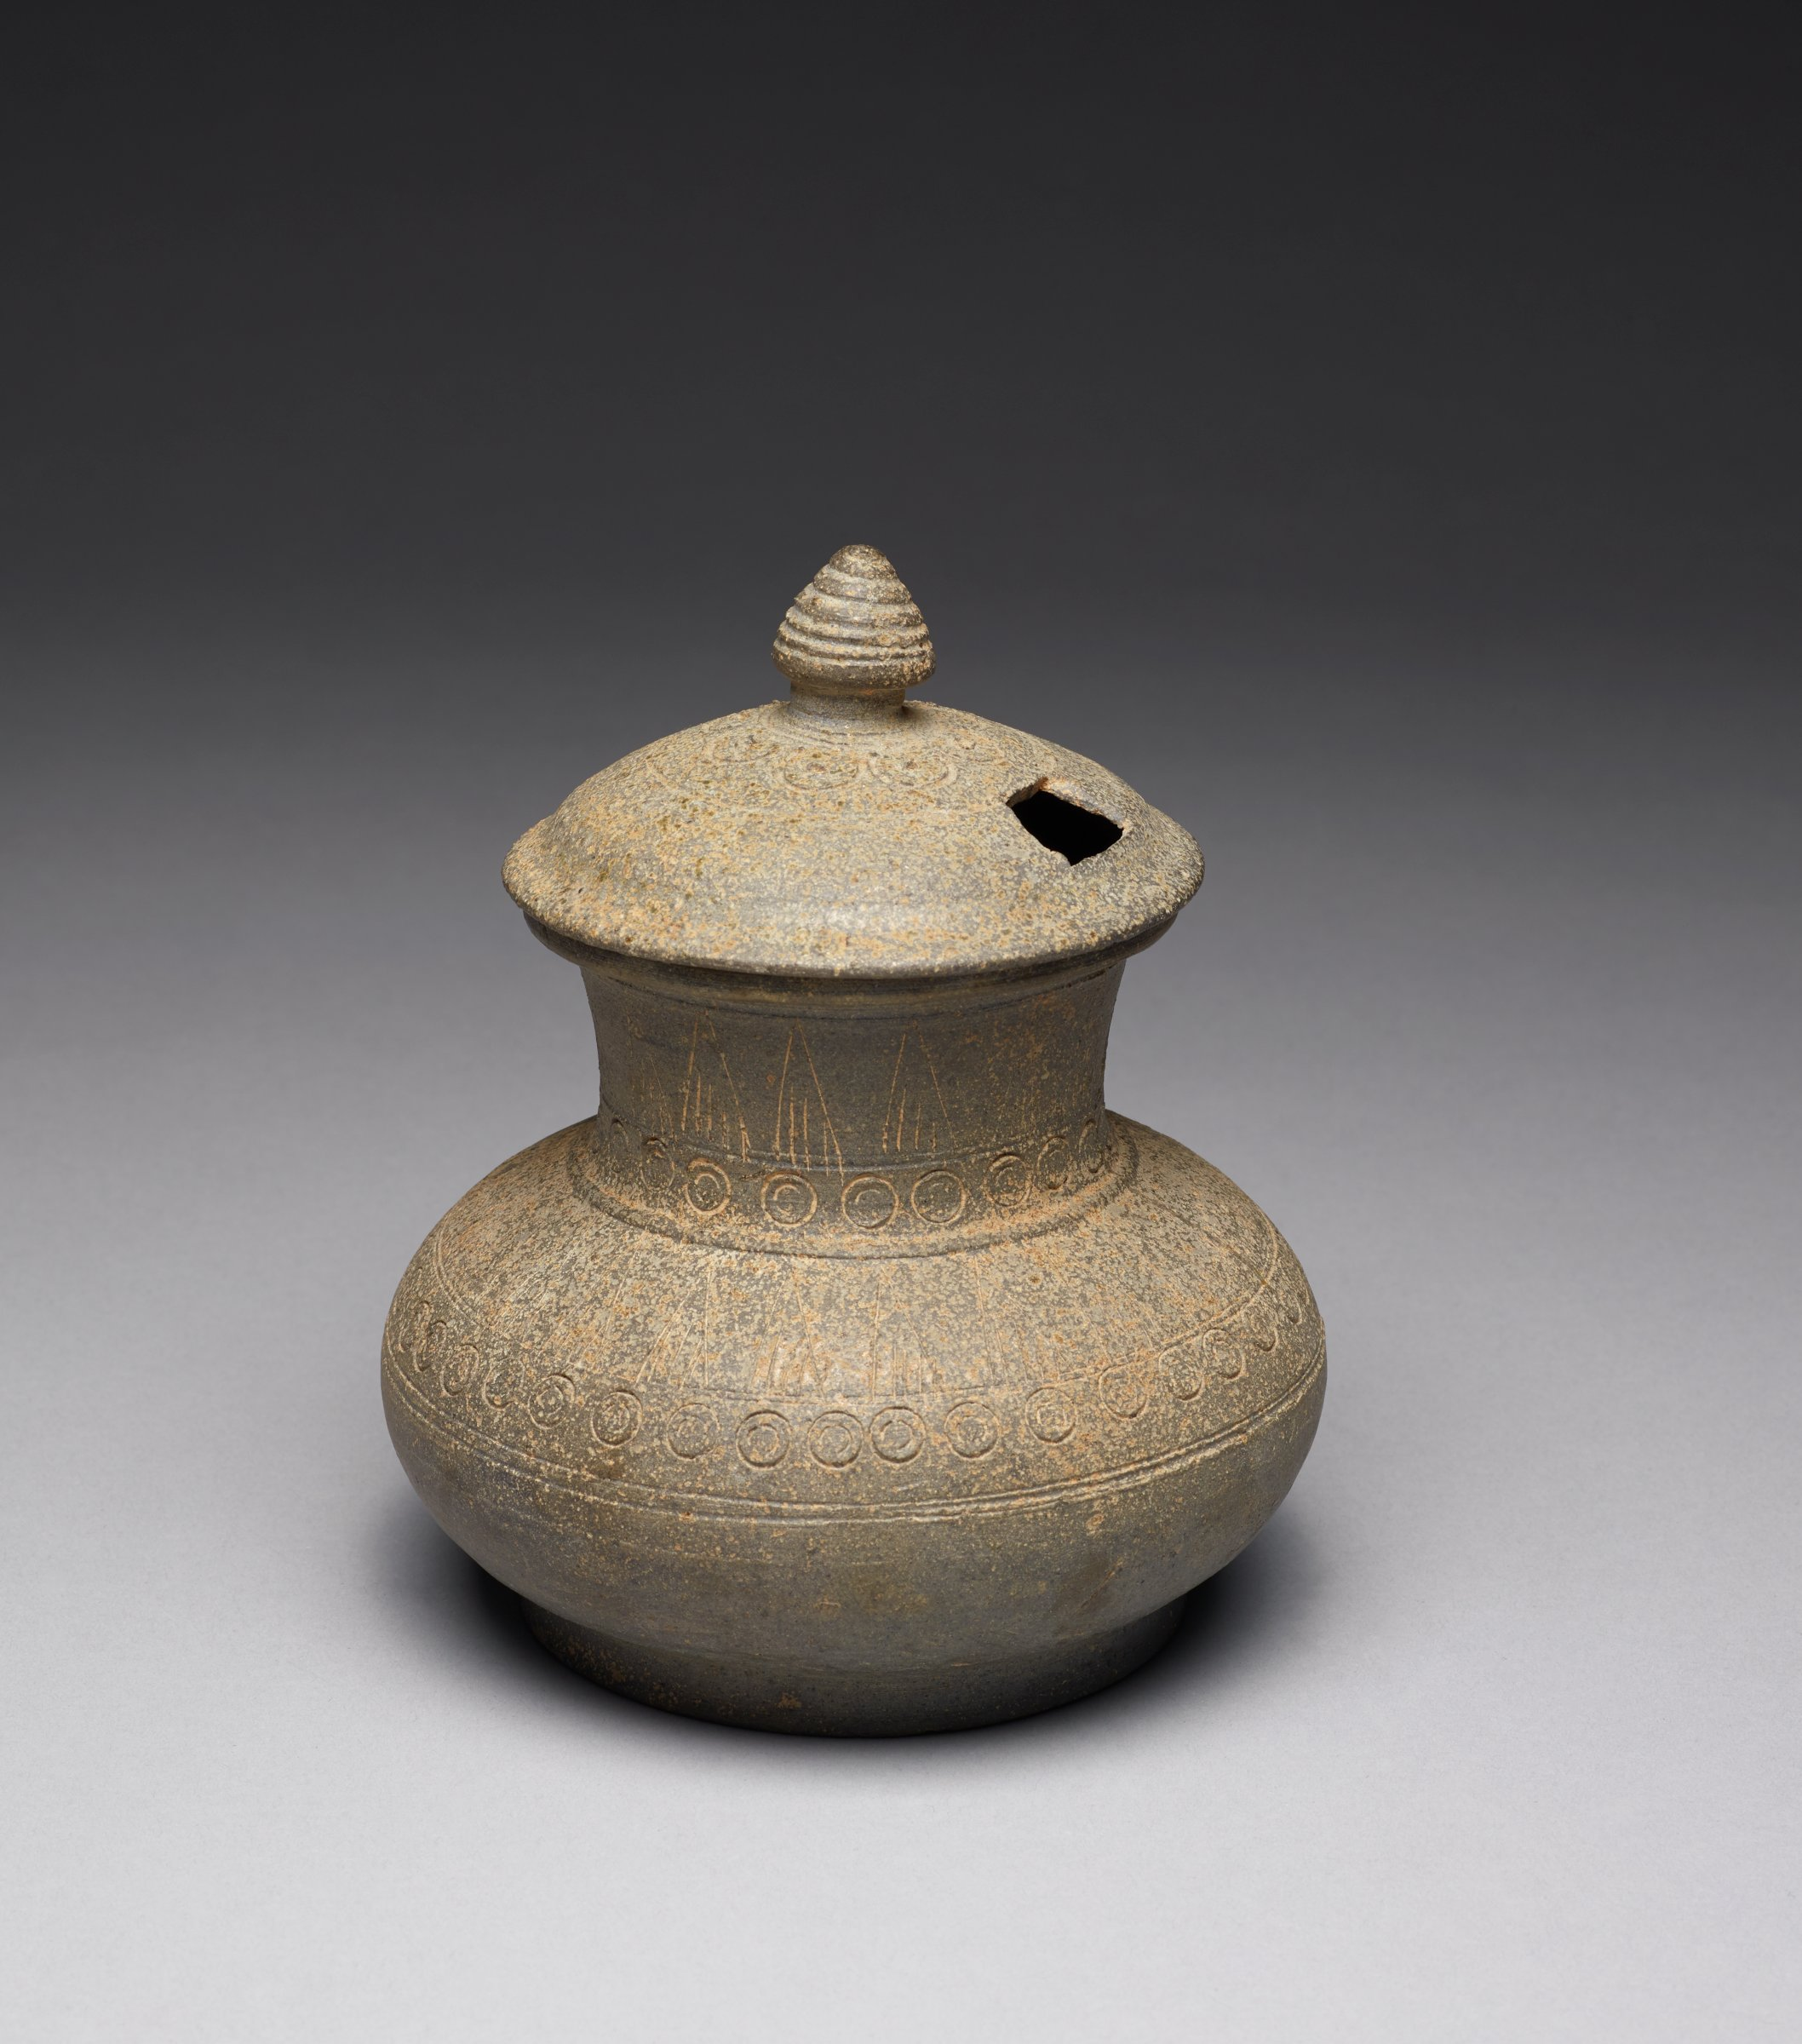 """Lotus-Bud Finial and Pierced Lid for Covered Urn with Carved Lotus Motifs; Thickly potted Jar: 5 5/8"""" Dia; H: 4""""Cover: 3.75 Dia.; H: 1.5"""""""